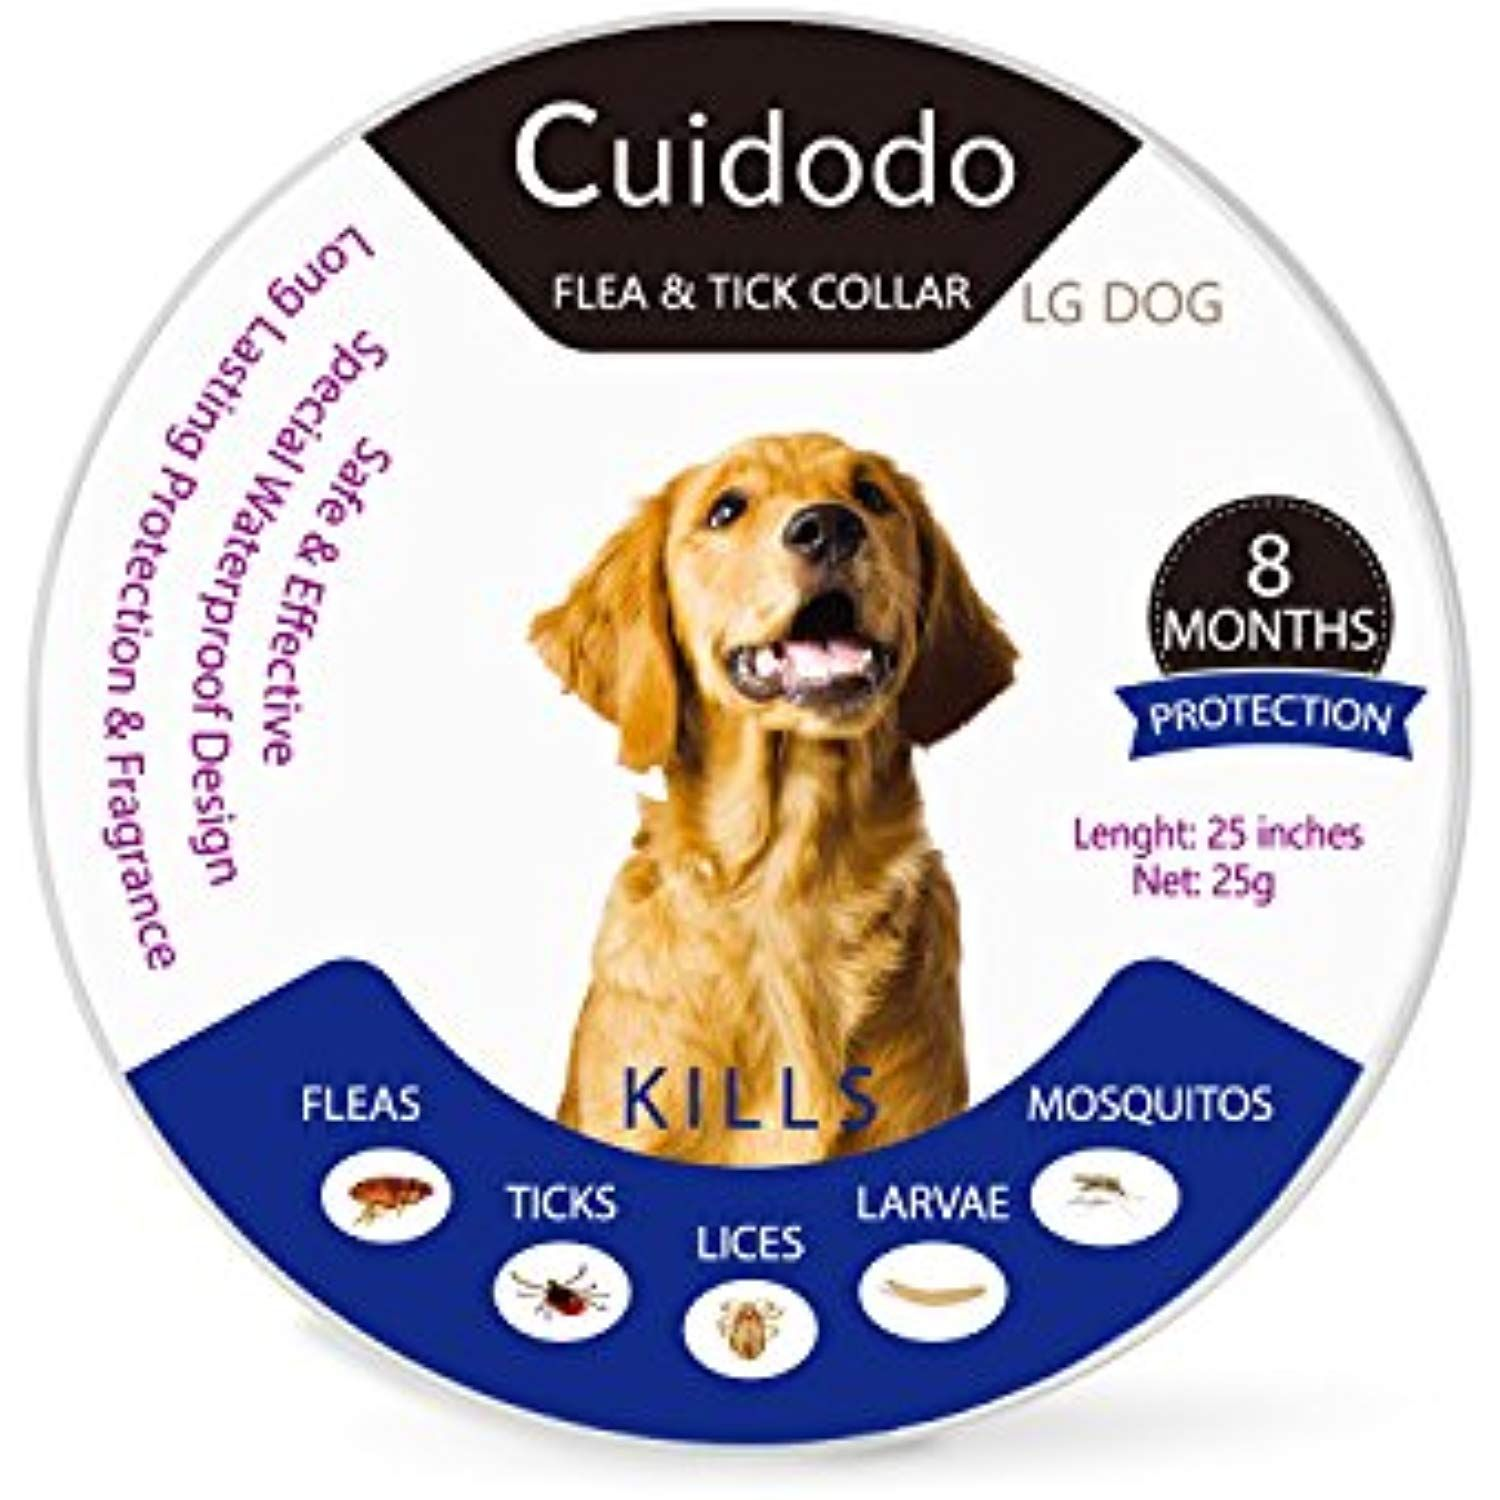 Cuidado Flea And Tick Collar For Dogs And Puppy Waterproof Dog Anti Flea Collar Protection For In 2020 Mosquito Repellent For Dogs Cat Fleas Cat Flea Collar